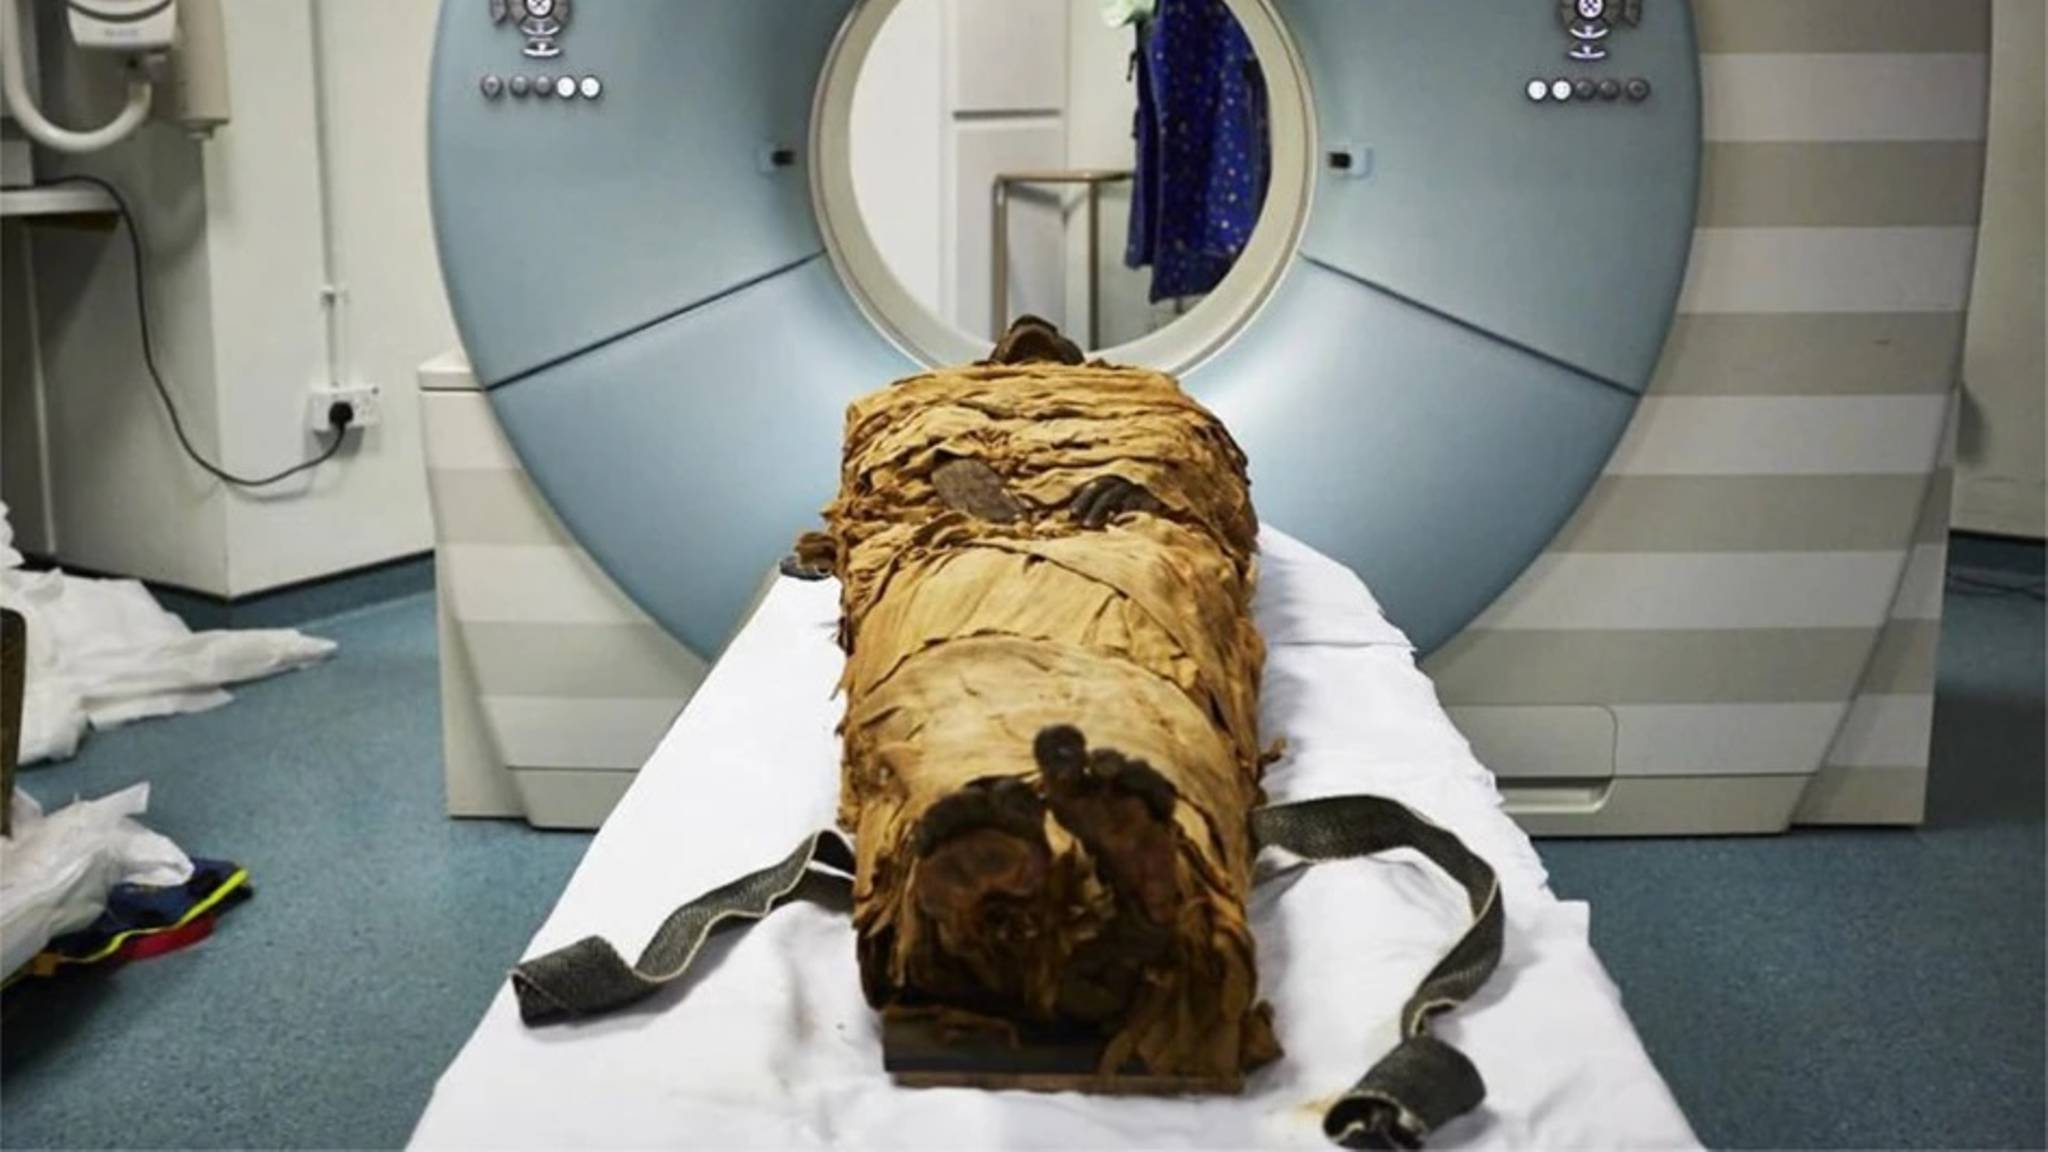 The mummified body of Nesyamun laid on the couch to be CT scanned at Leeds General Infirmary. Photo via Leeds Teaching Hospitals/Leeds Museums and Galleries.